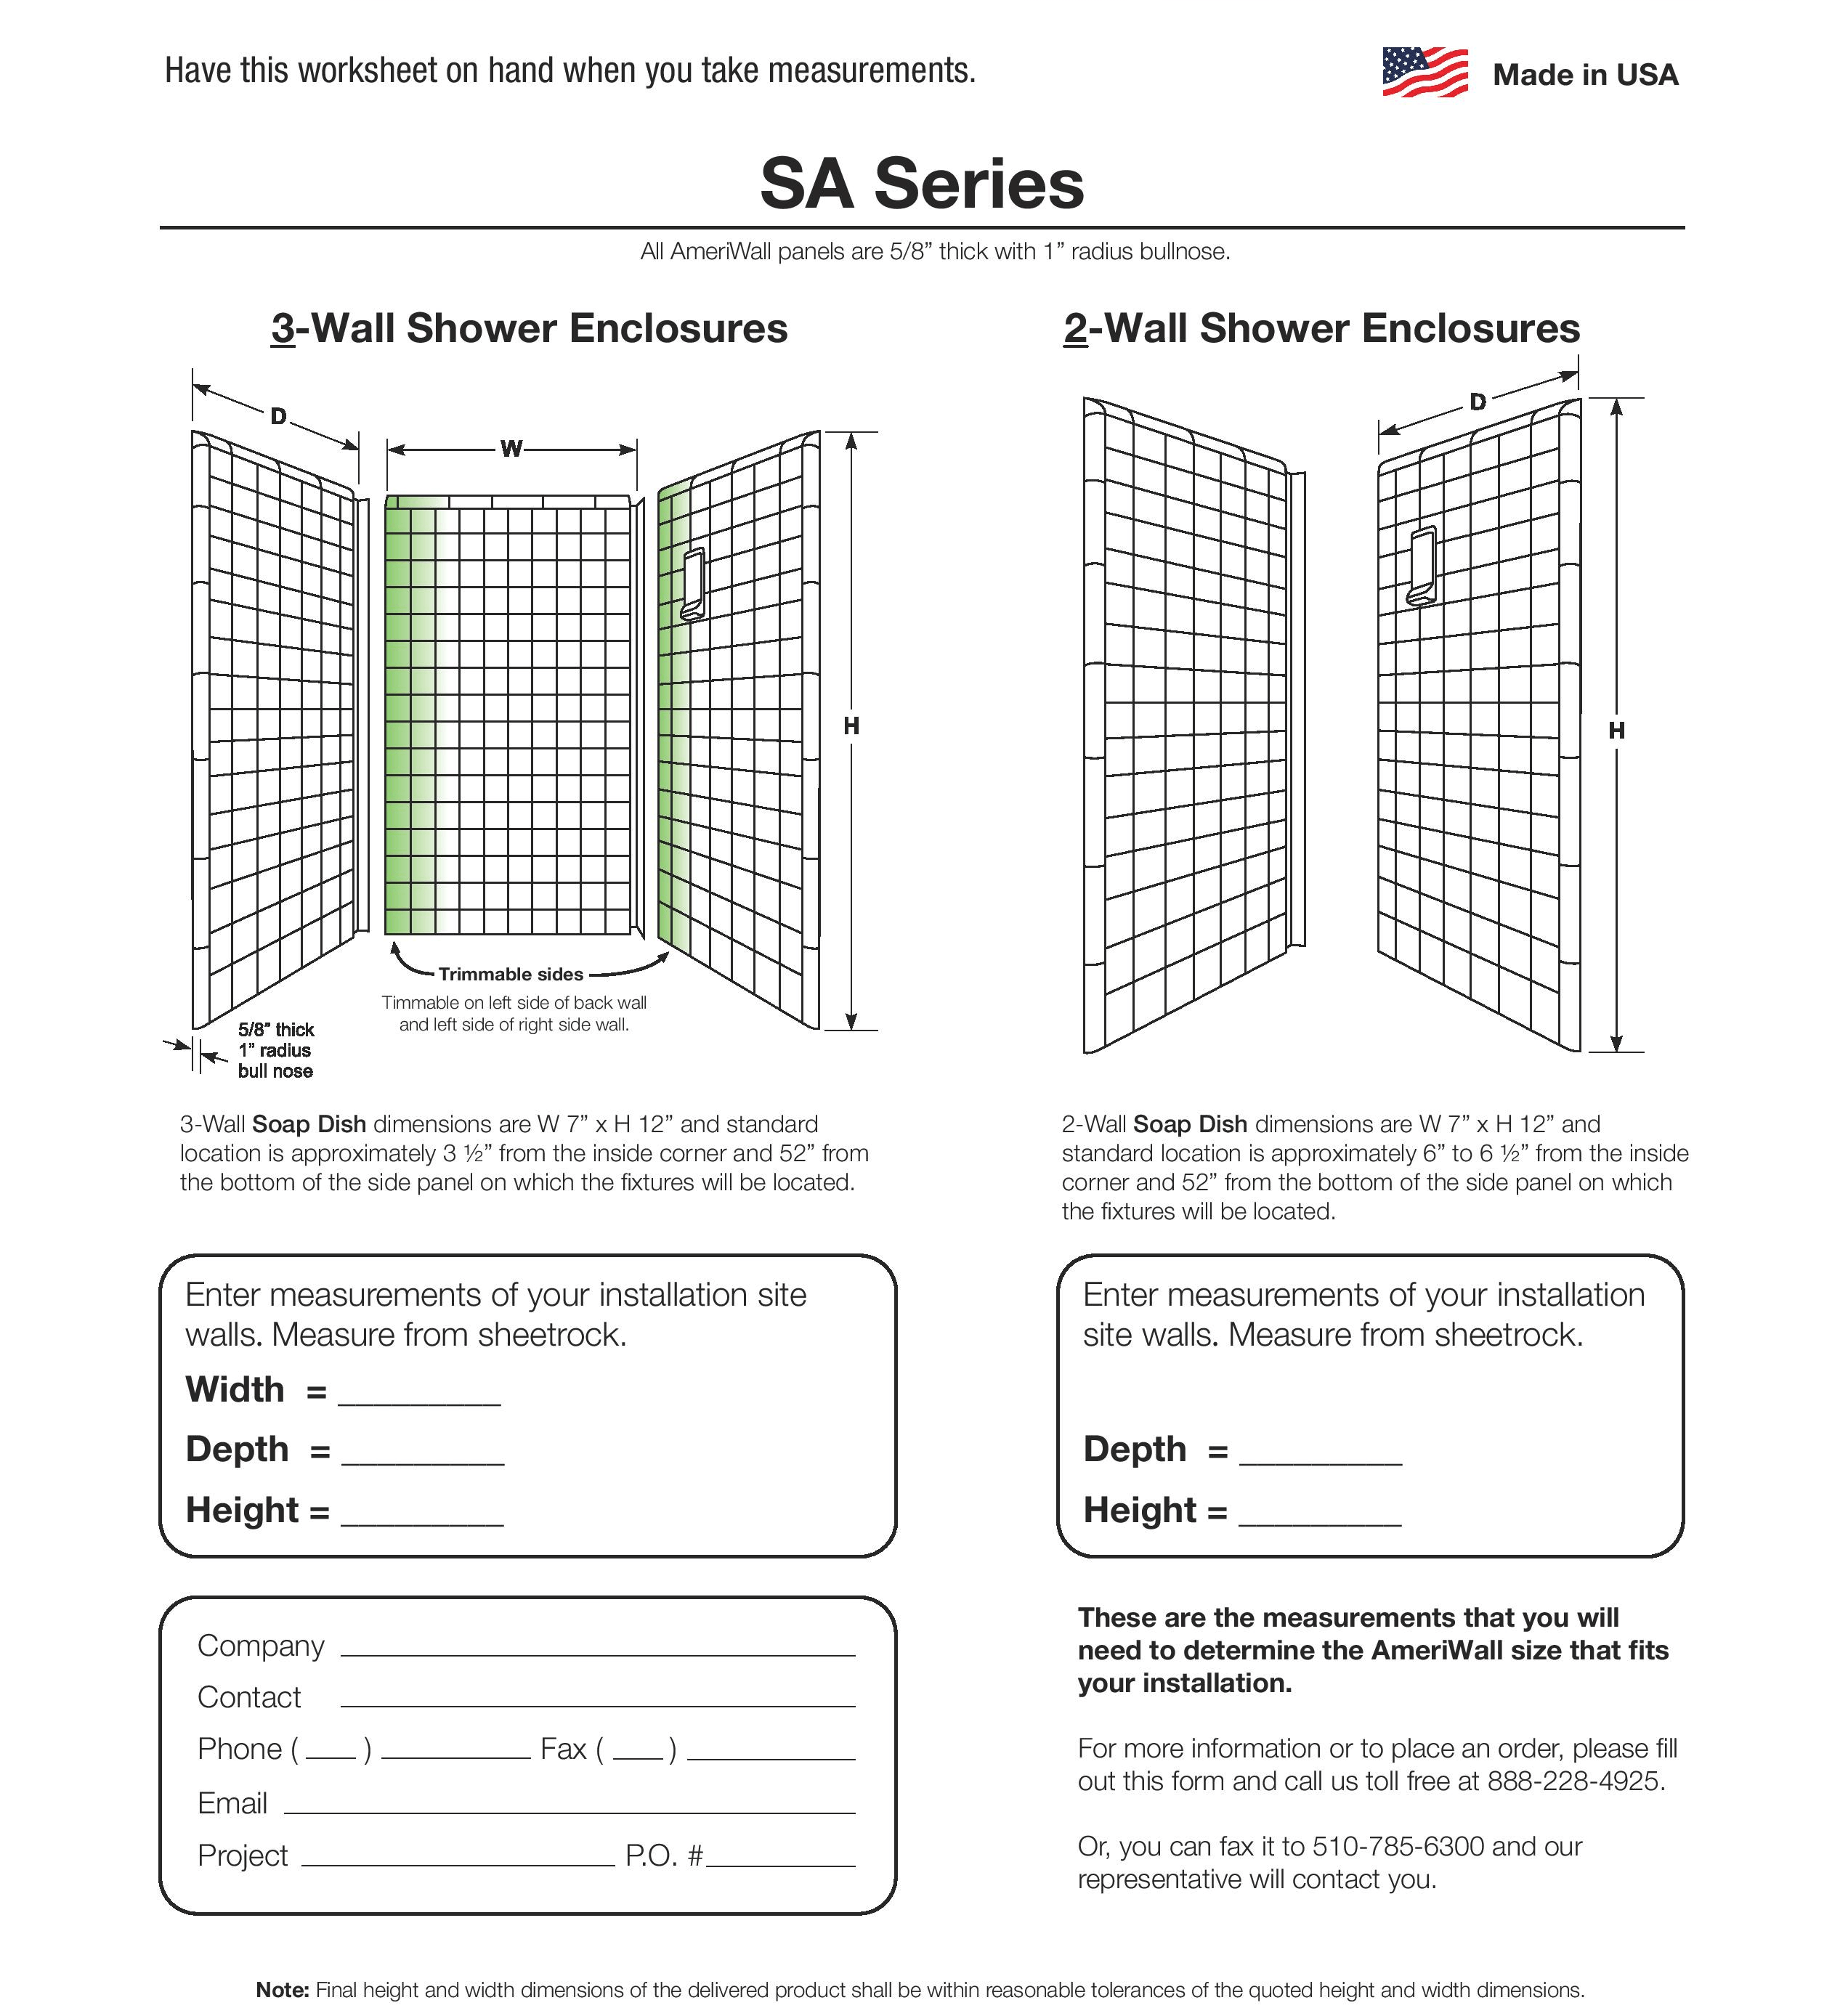 SA series enclosures